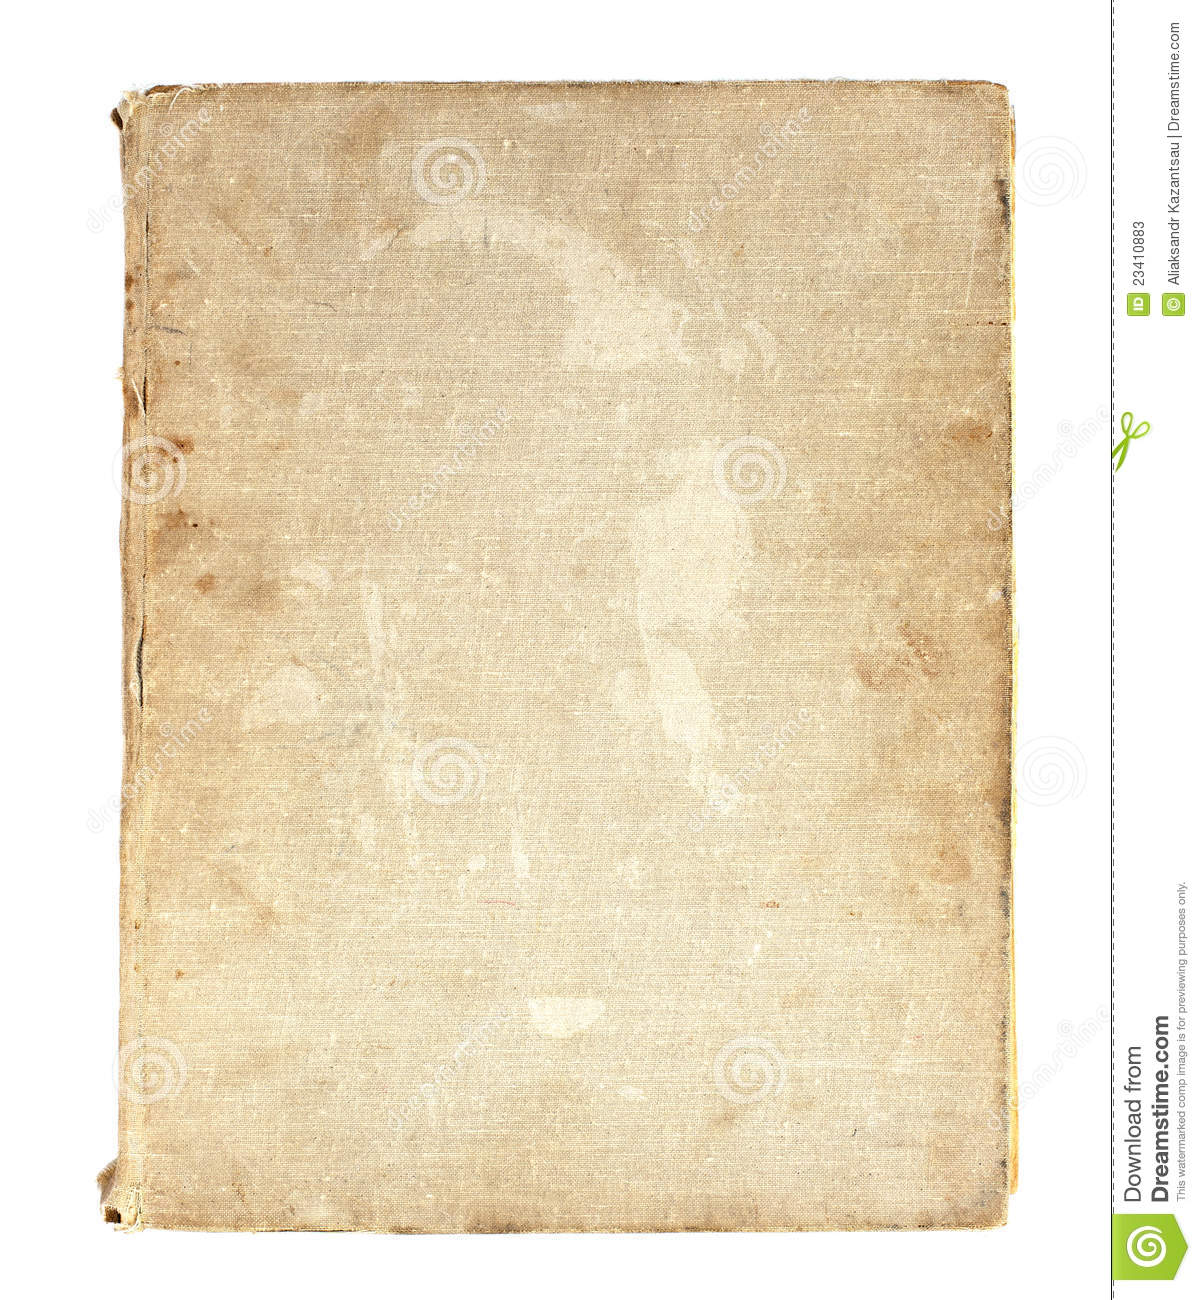 Linen Book Cover Material : Old book in a cloth cover stock image of